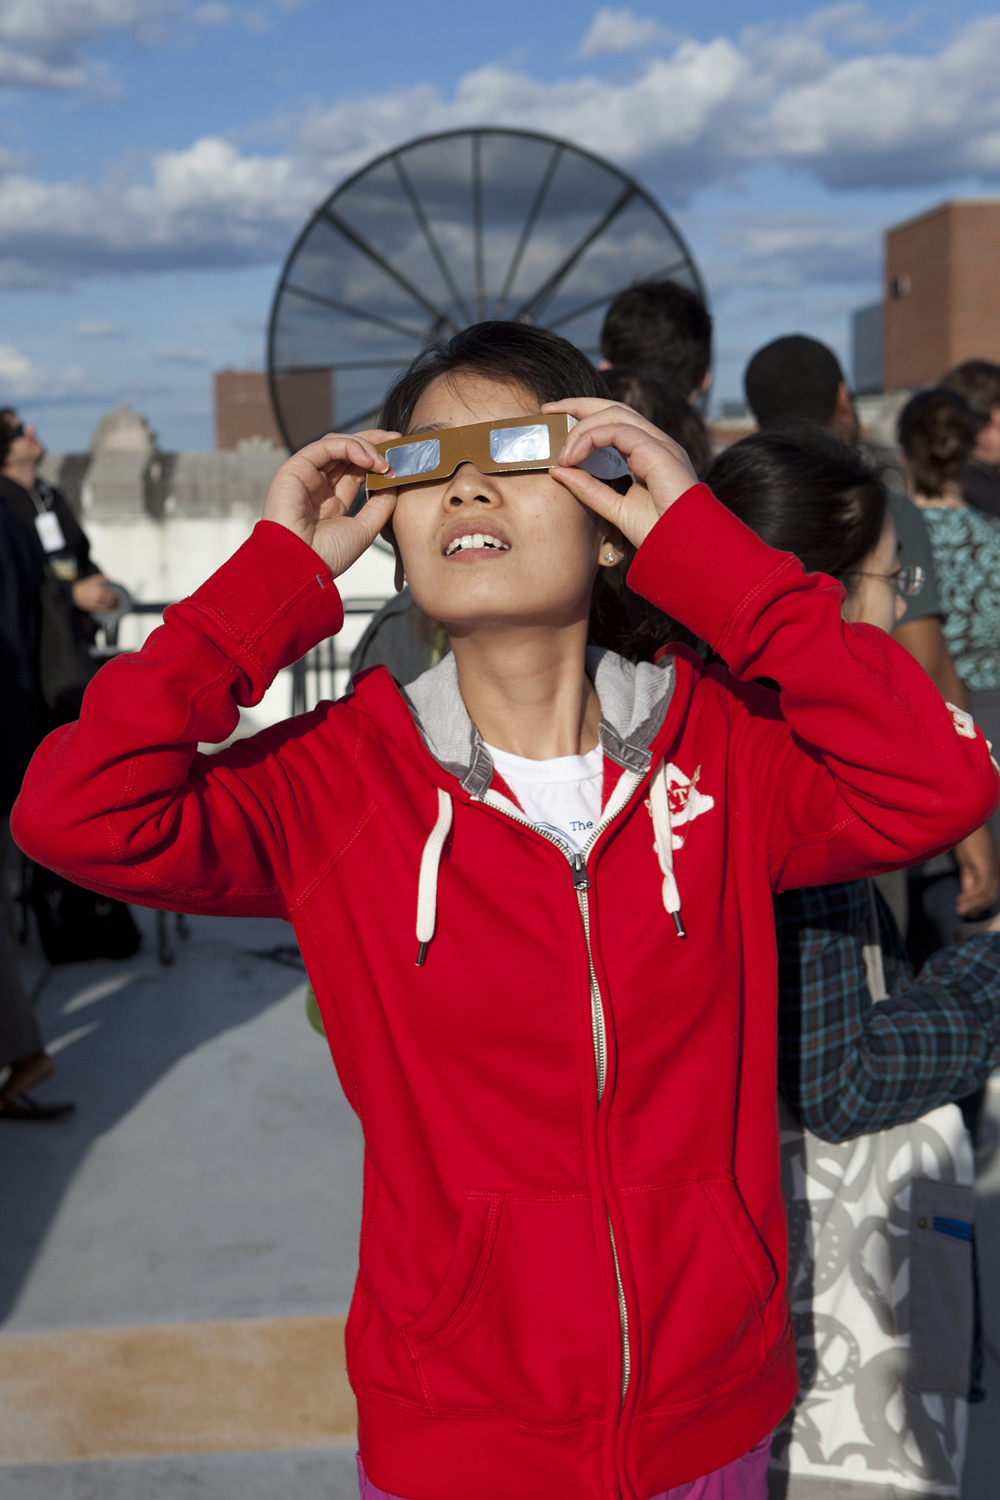 Fei He views the  Transit of Venus  with special glasses at the University of Michigan's Angell Hall in Ann Arbor, Michigan. June 5, 2012